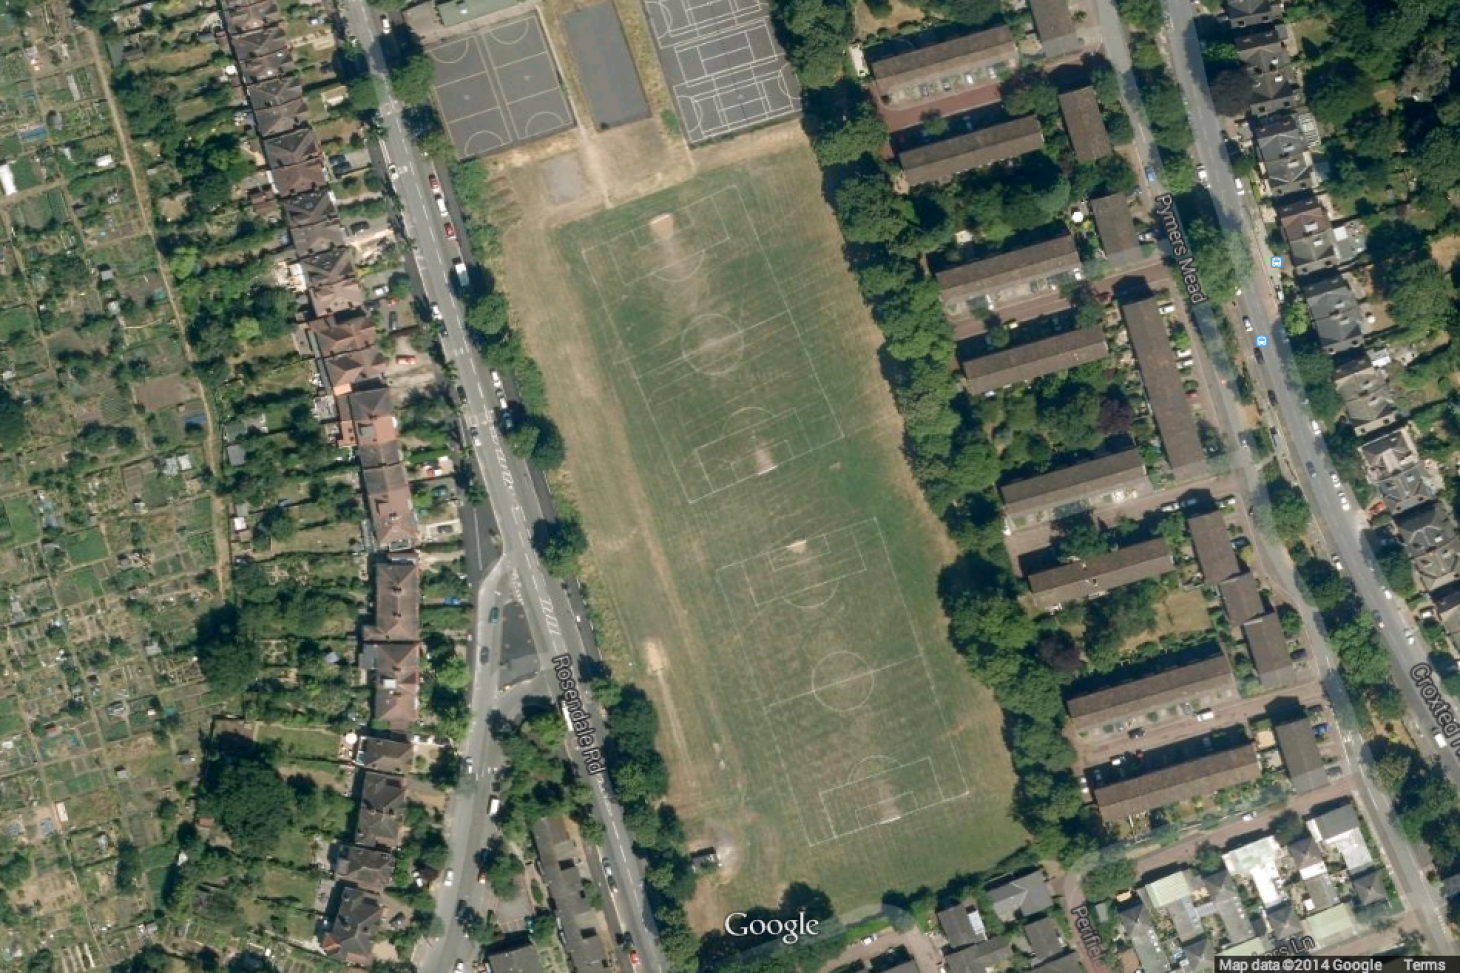 Rosendale Playing Fields 11 a side | Grass football pitch